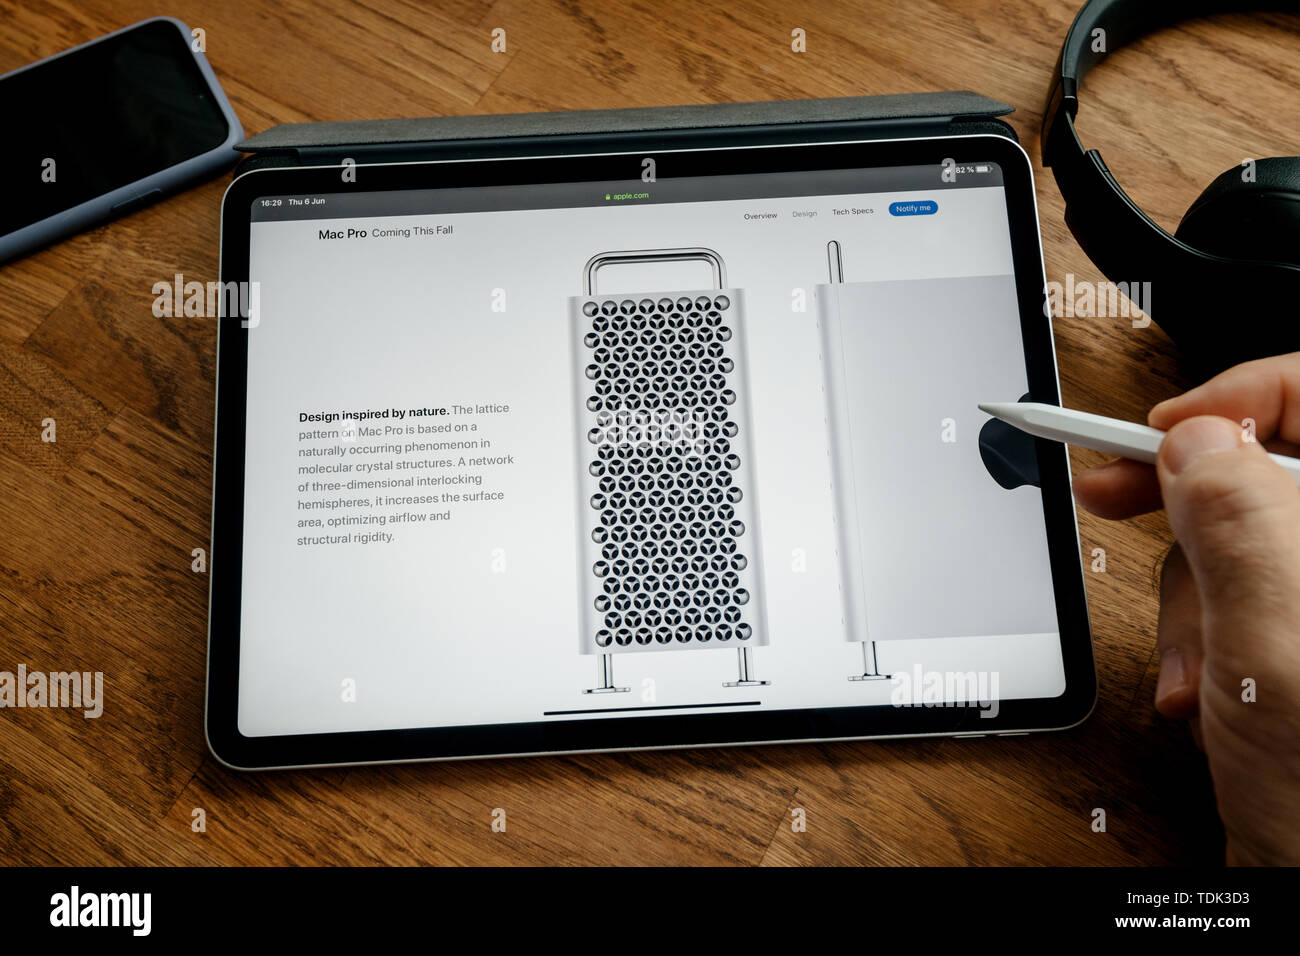 Paris, France - Jun 6, 2019: Man reading on Apple iPad Pro tablet about latest announcement of at Developers Conference WWDC - showing the Mac Pro workstation with design inspired by nature text - Stock Image